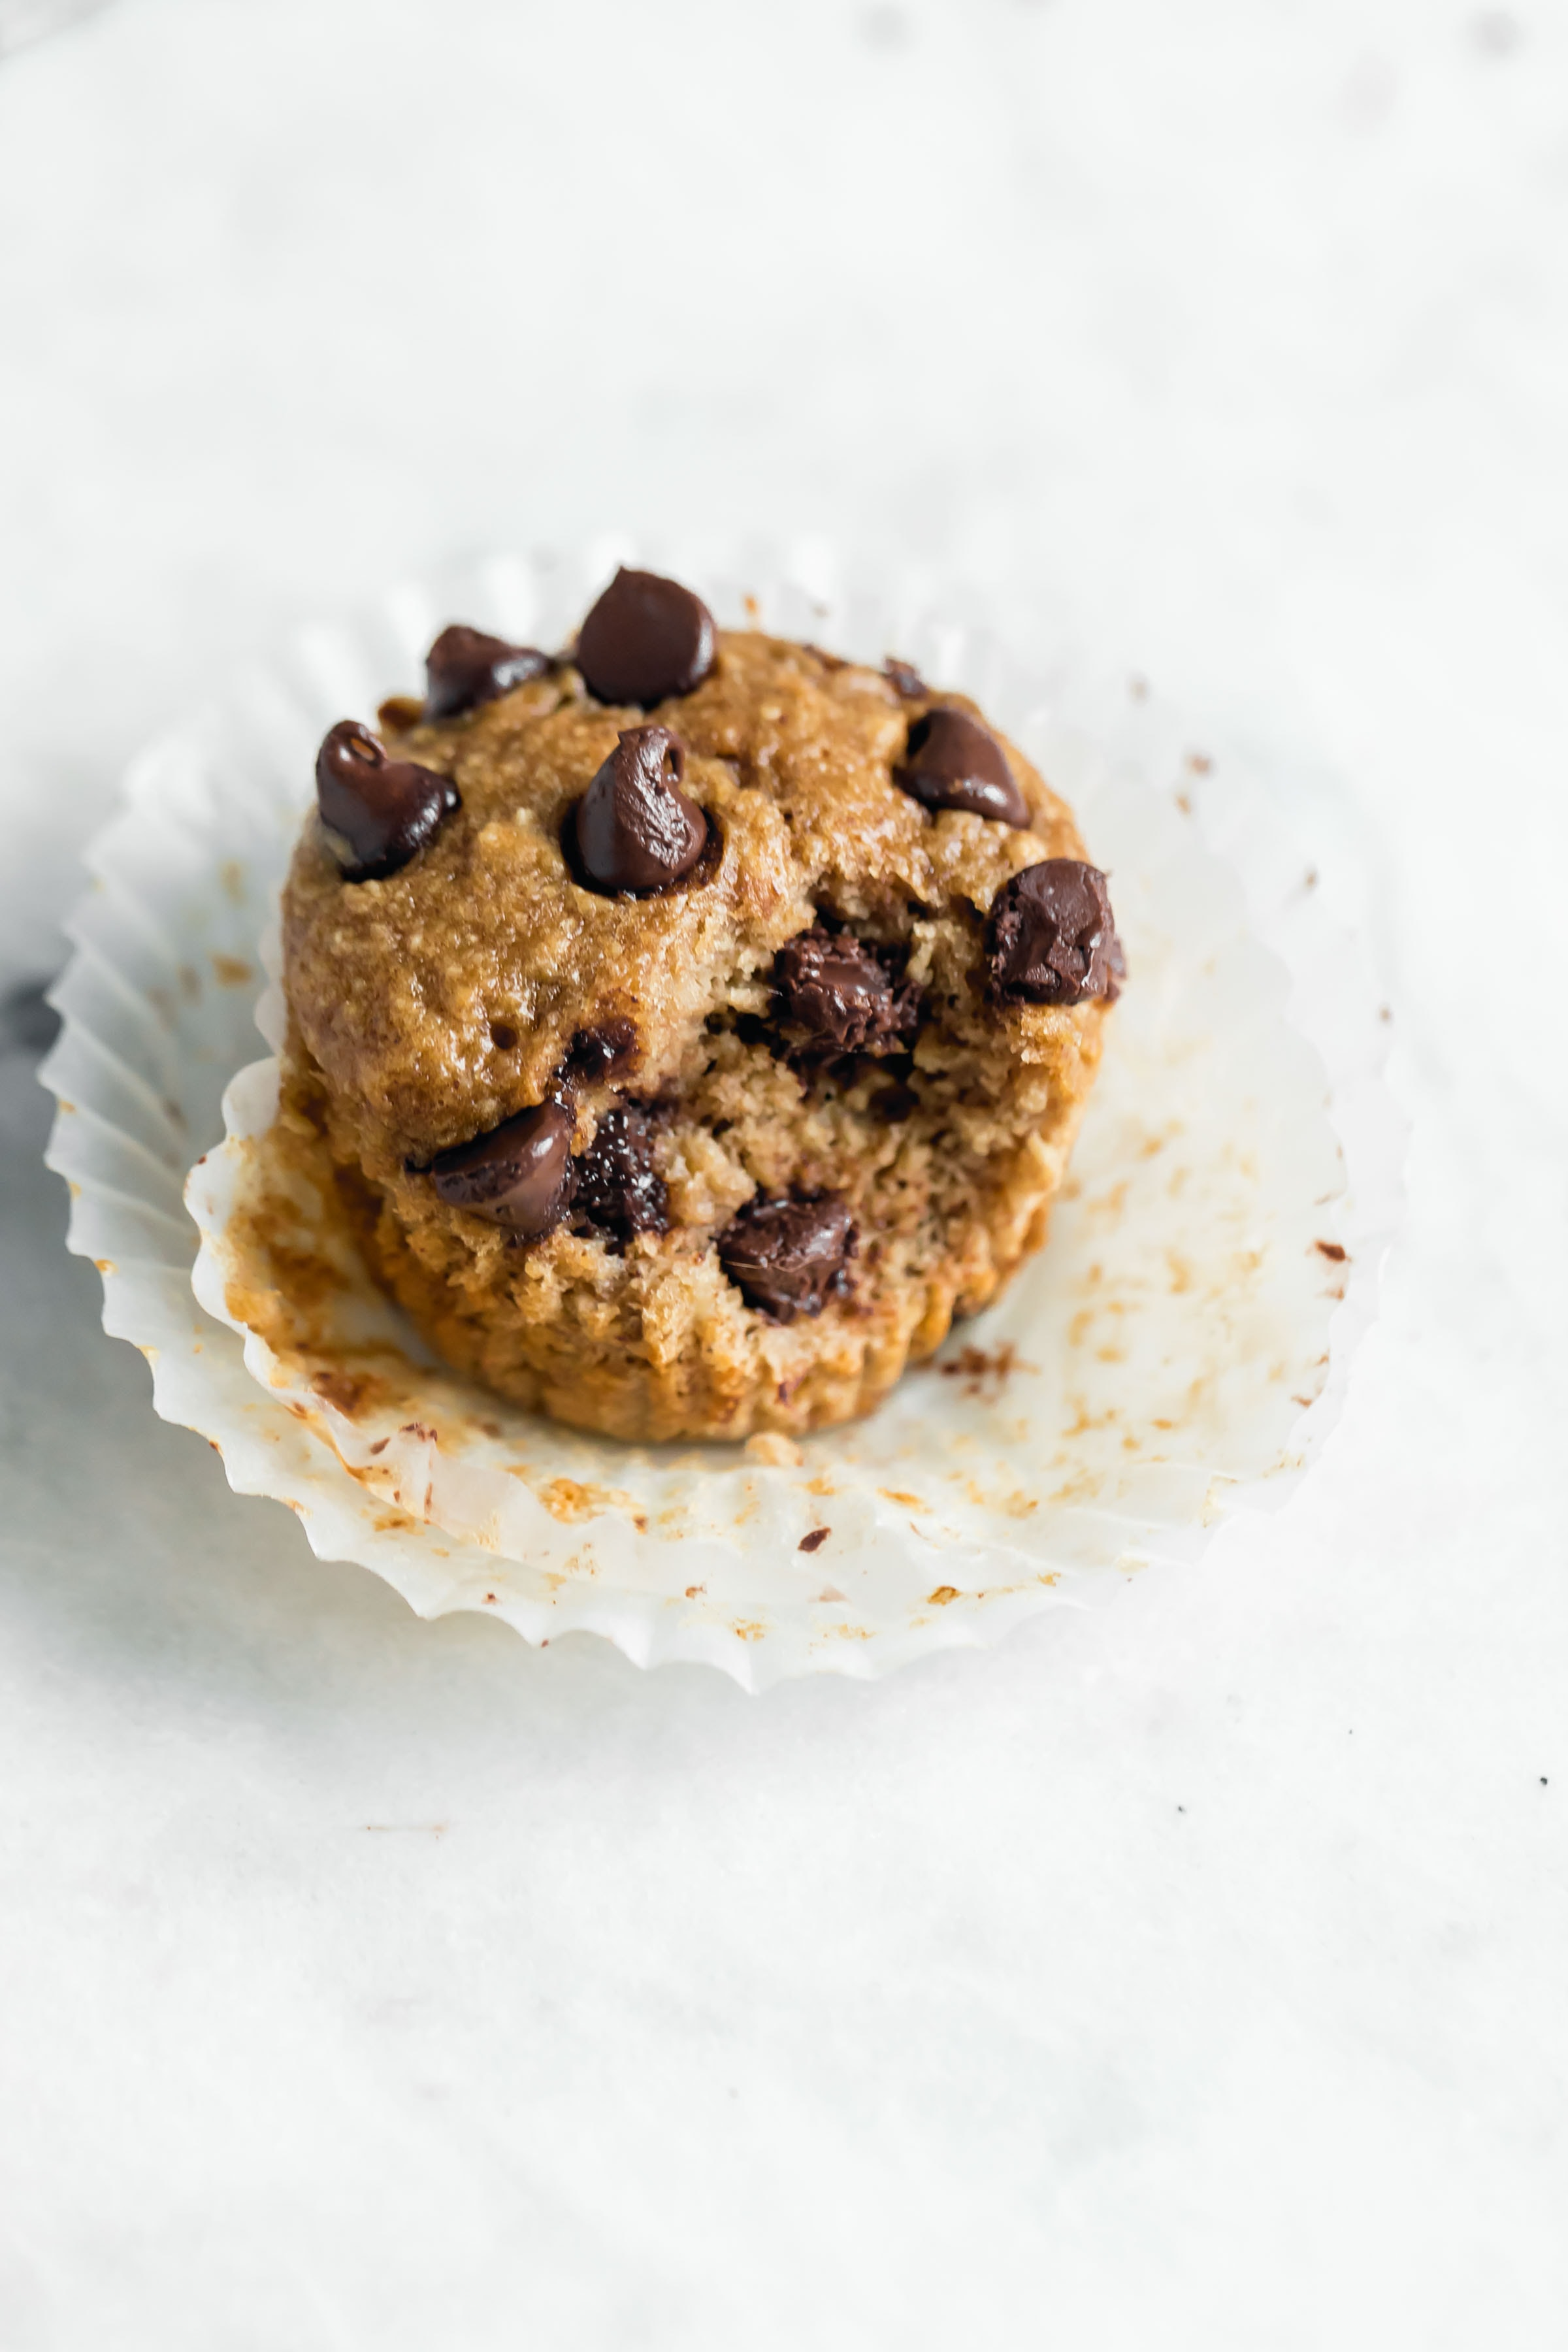 These gluten free healthy peanut butter banana muffins studded with chocolate chips are our new favorite breakfast food :)